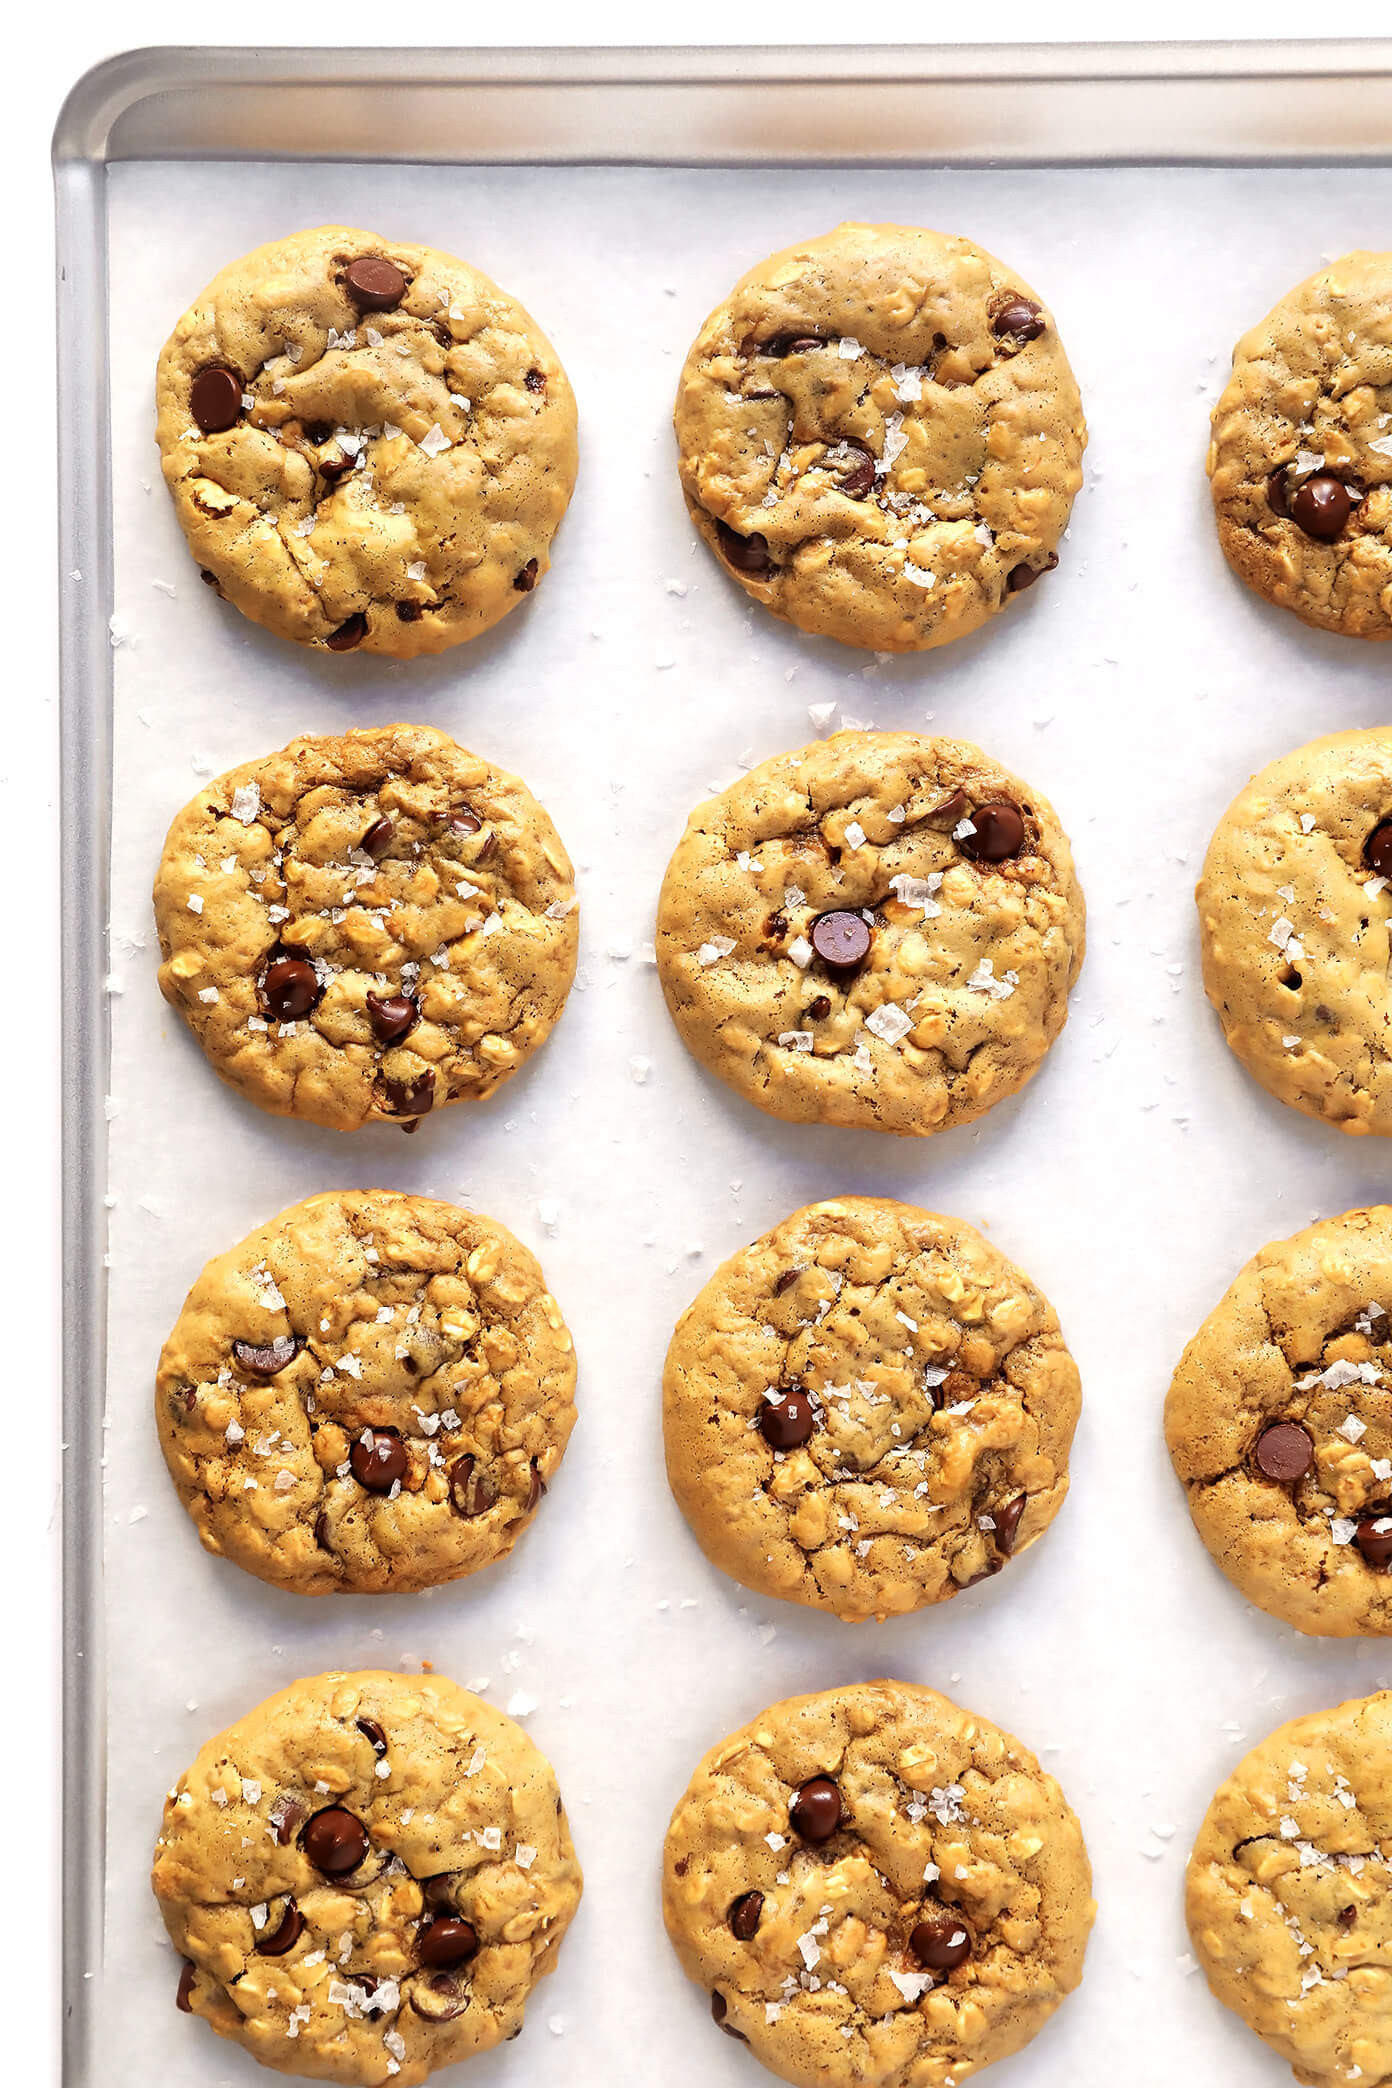 Healthy Cookies Recipe  Healthy Peanut Butter Cookies Gimme Some Oven